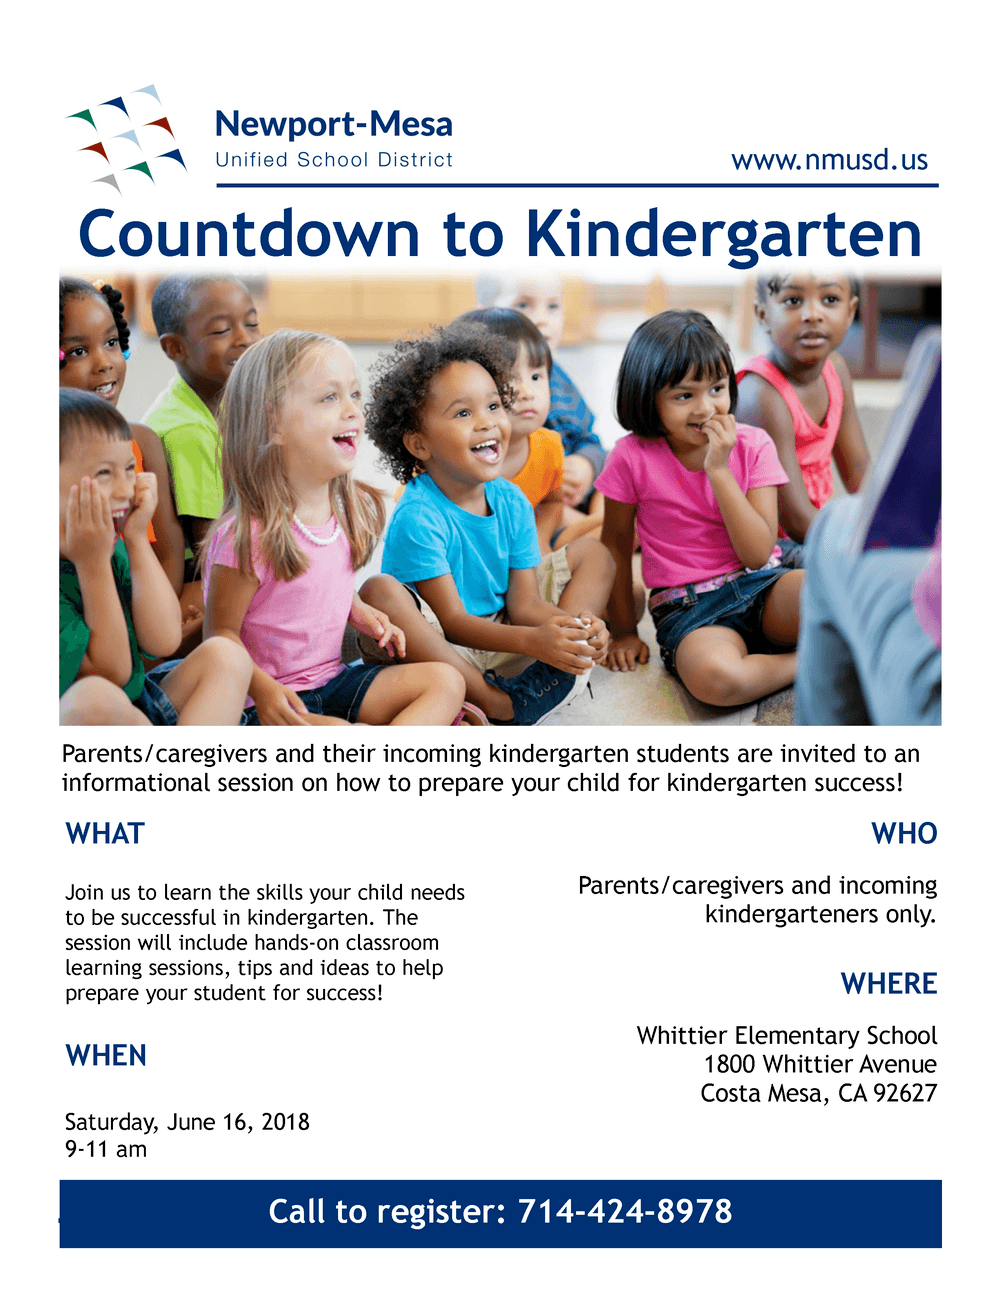 Countdown to Kindergarten Event Flyer